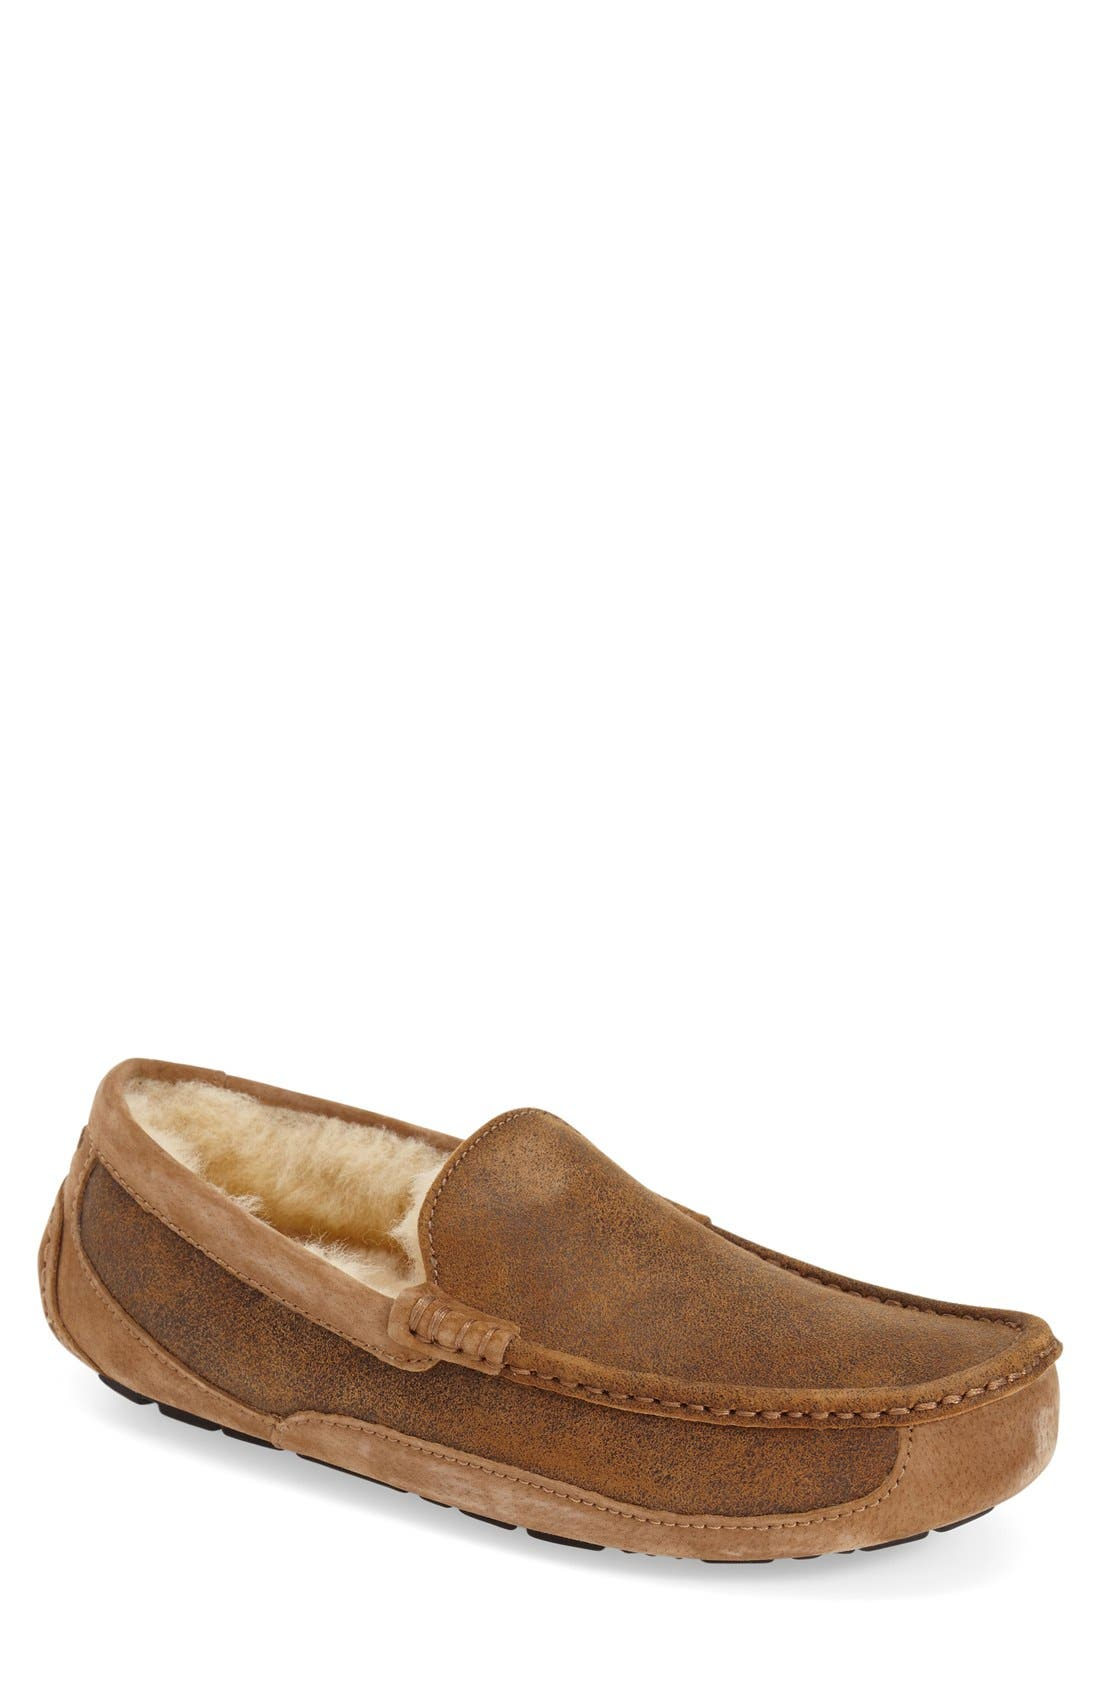 Ascot Bomber Slipper,                         Main,                         color, Bomber Jacket Chestnut